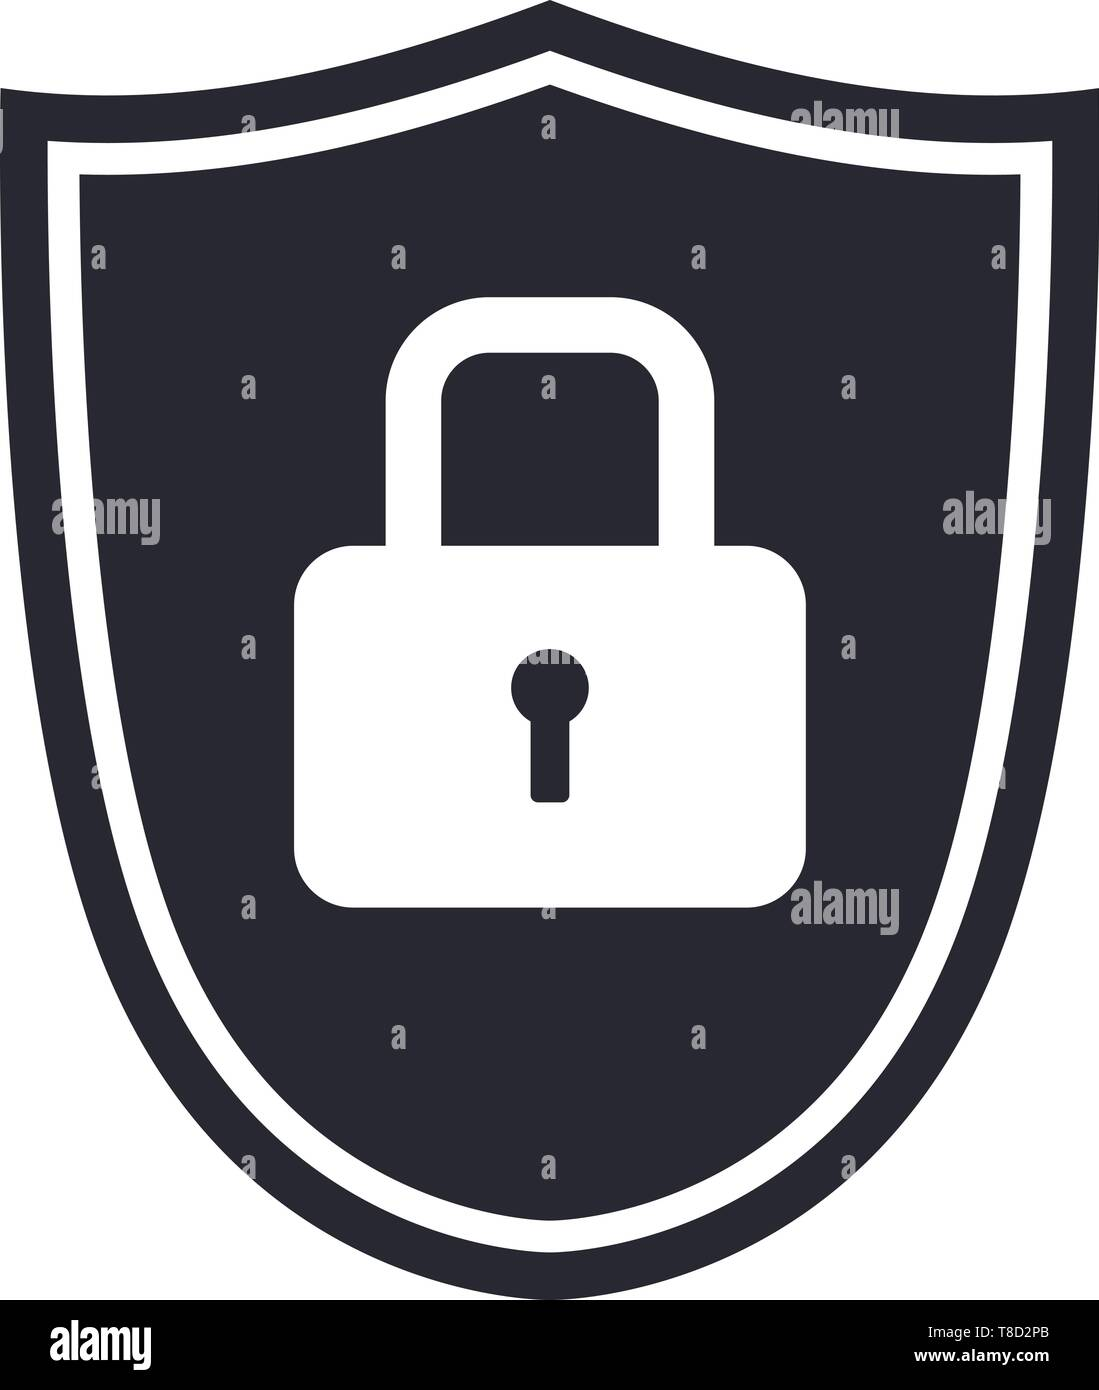 Shield icon symbol with security lock for protection vector illustration 2 - Stock Vector